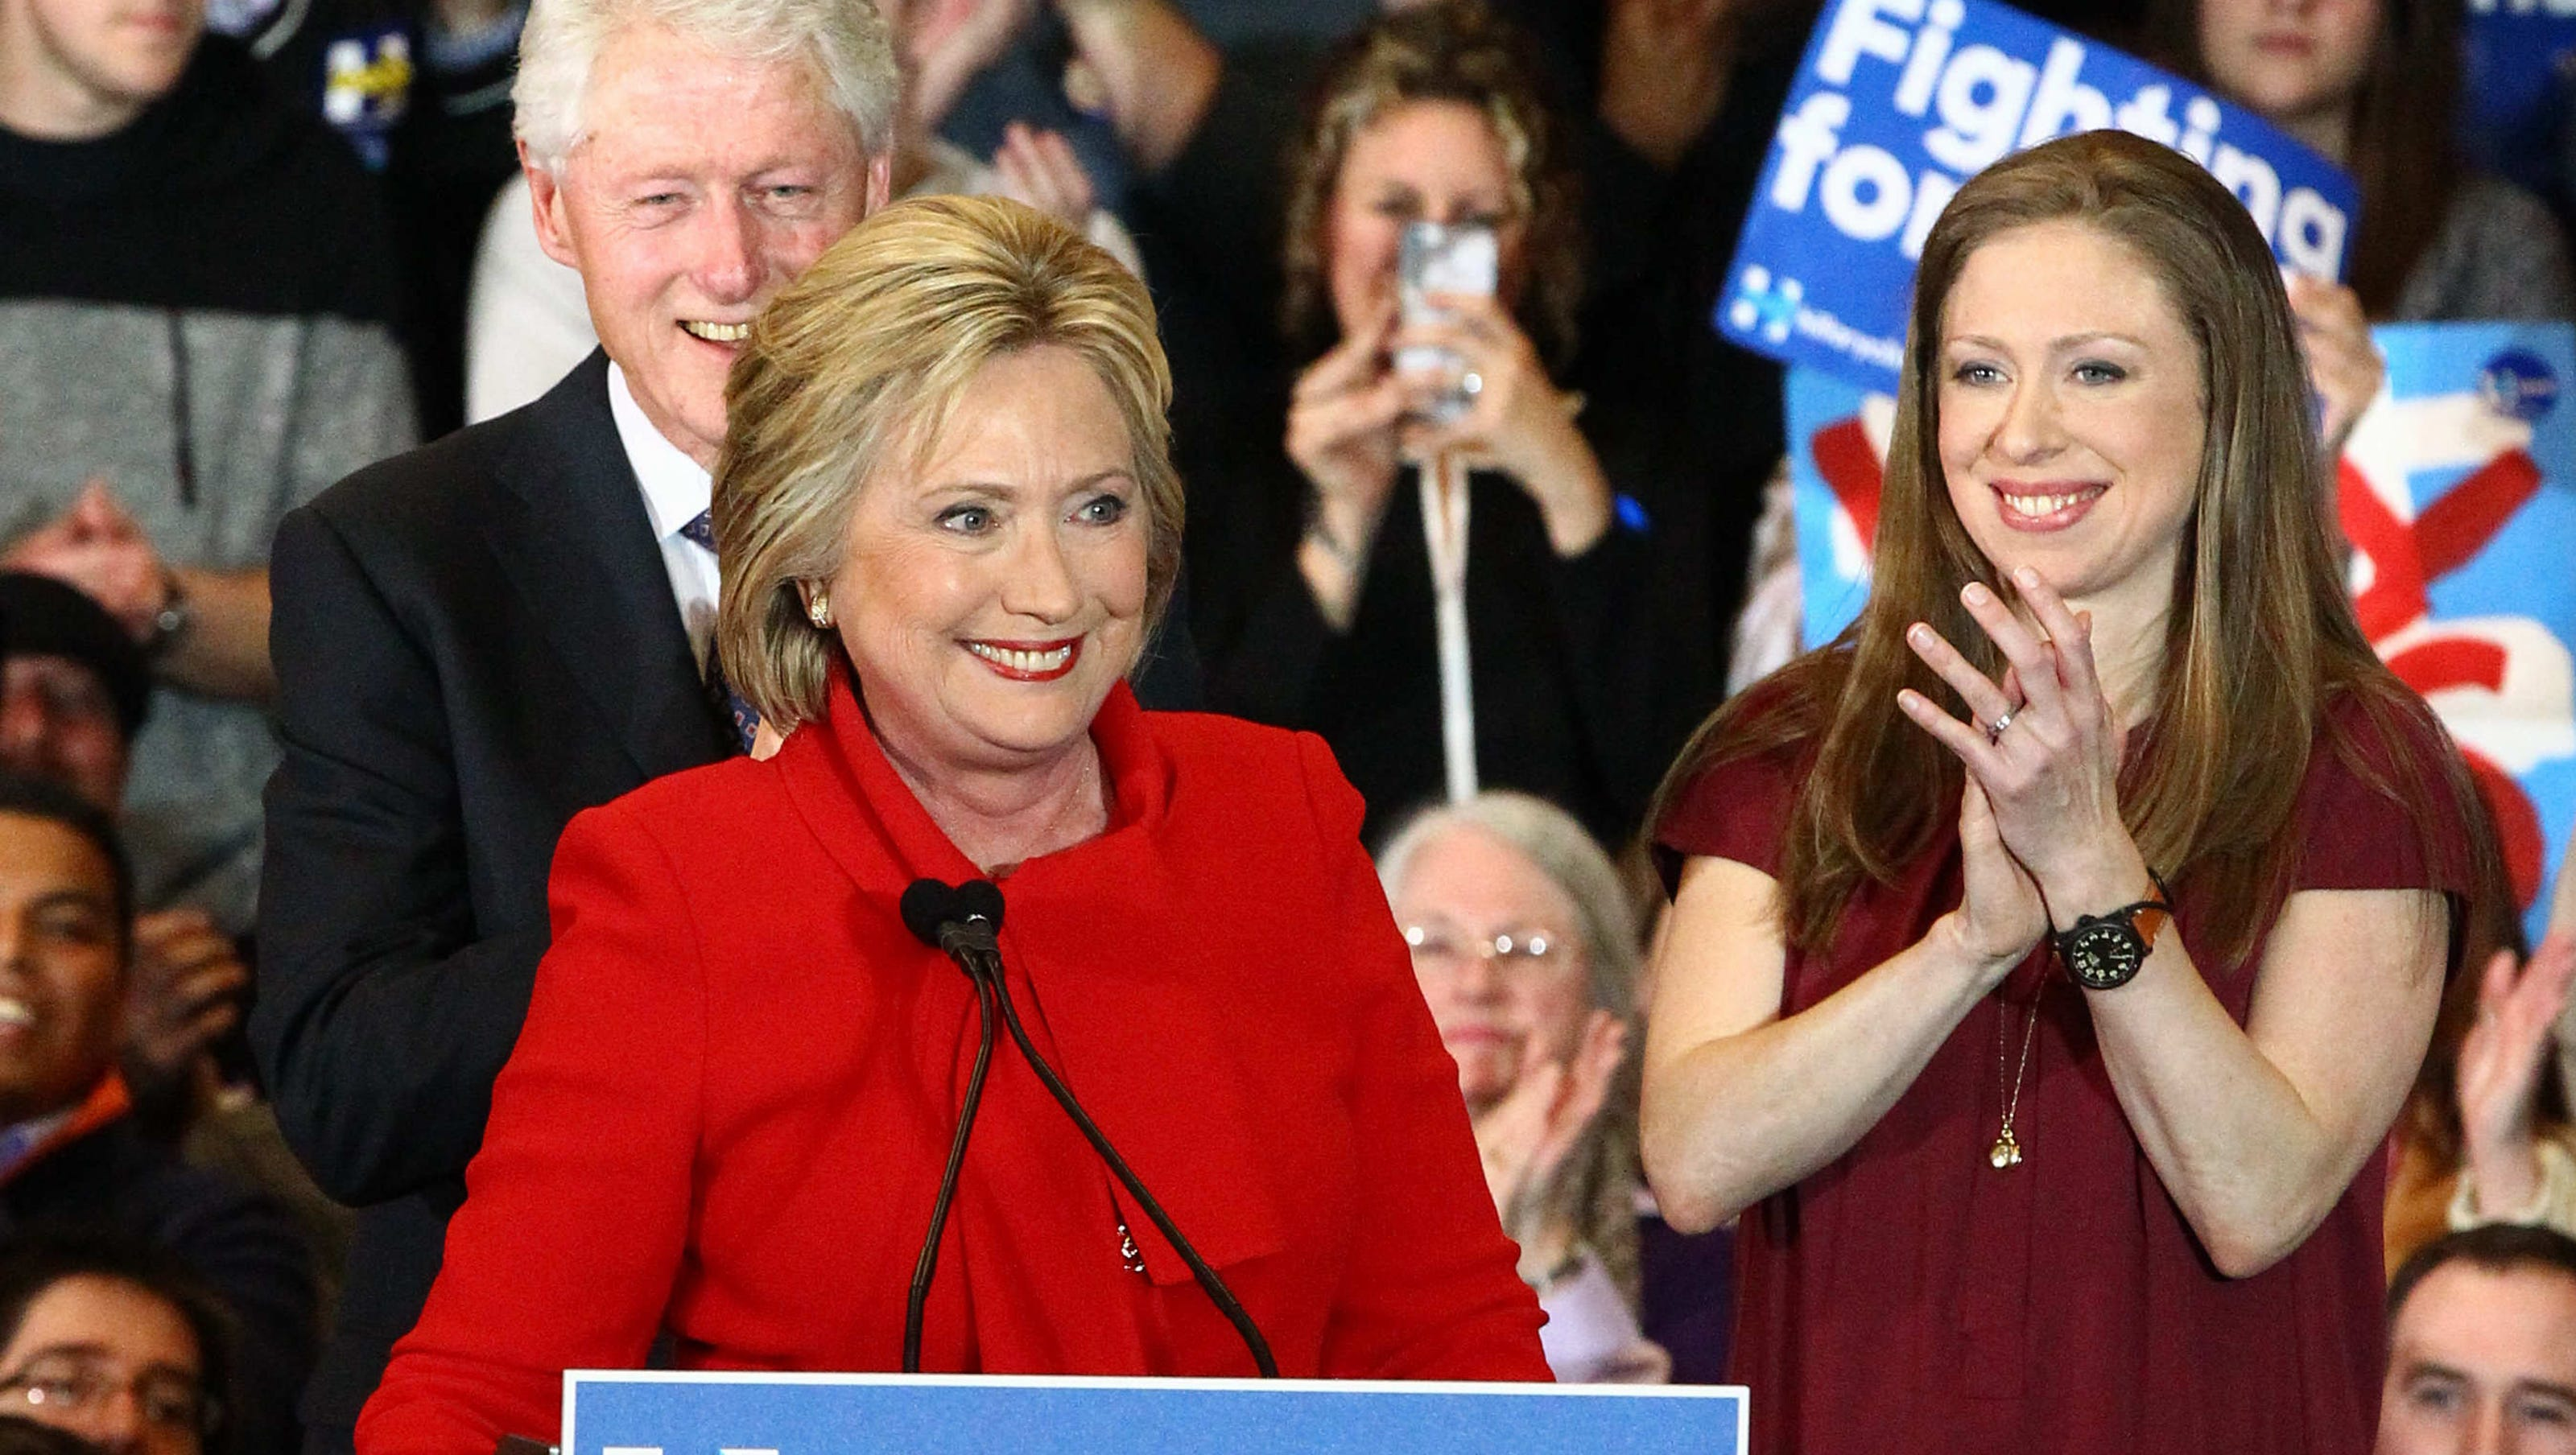 Clinton vows to fight on with razor-thin lead